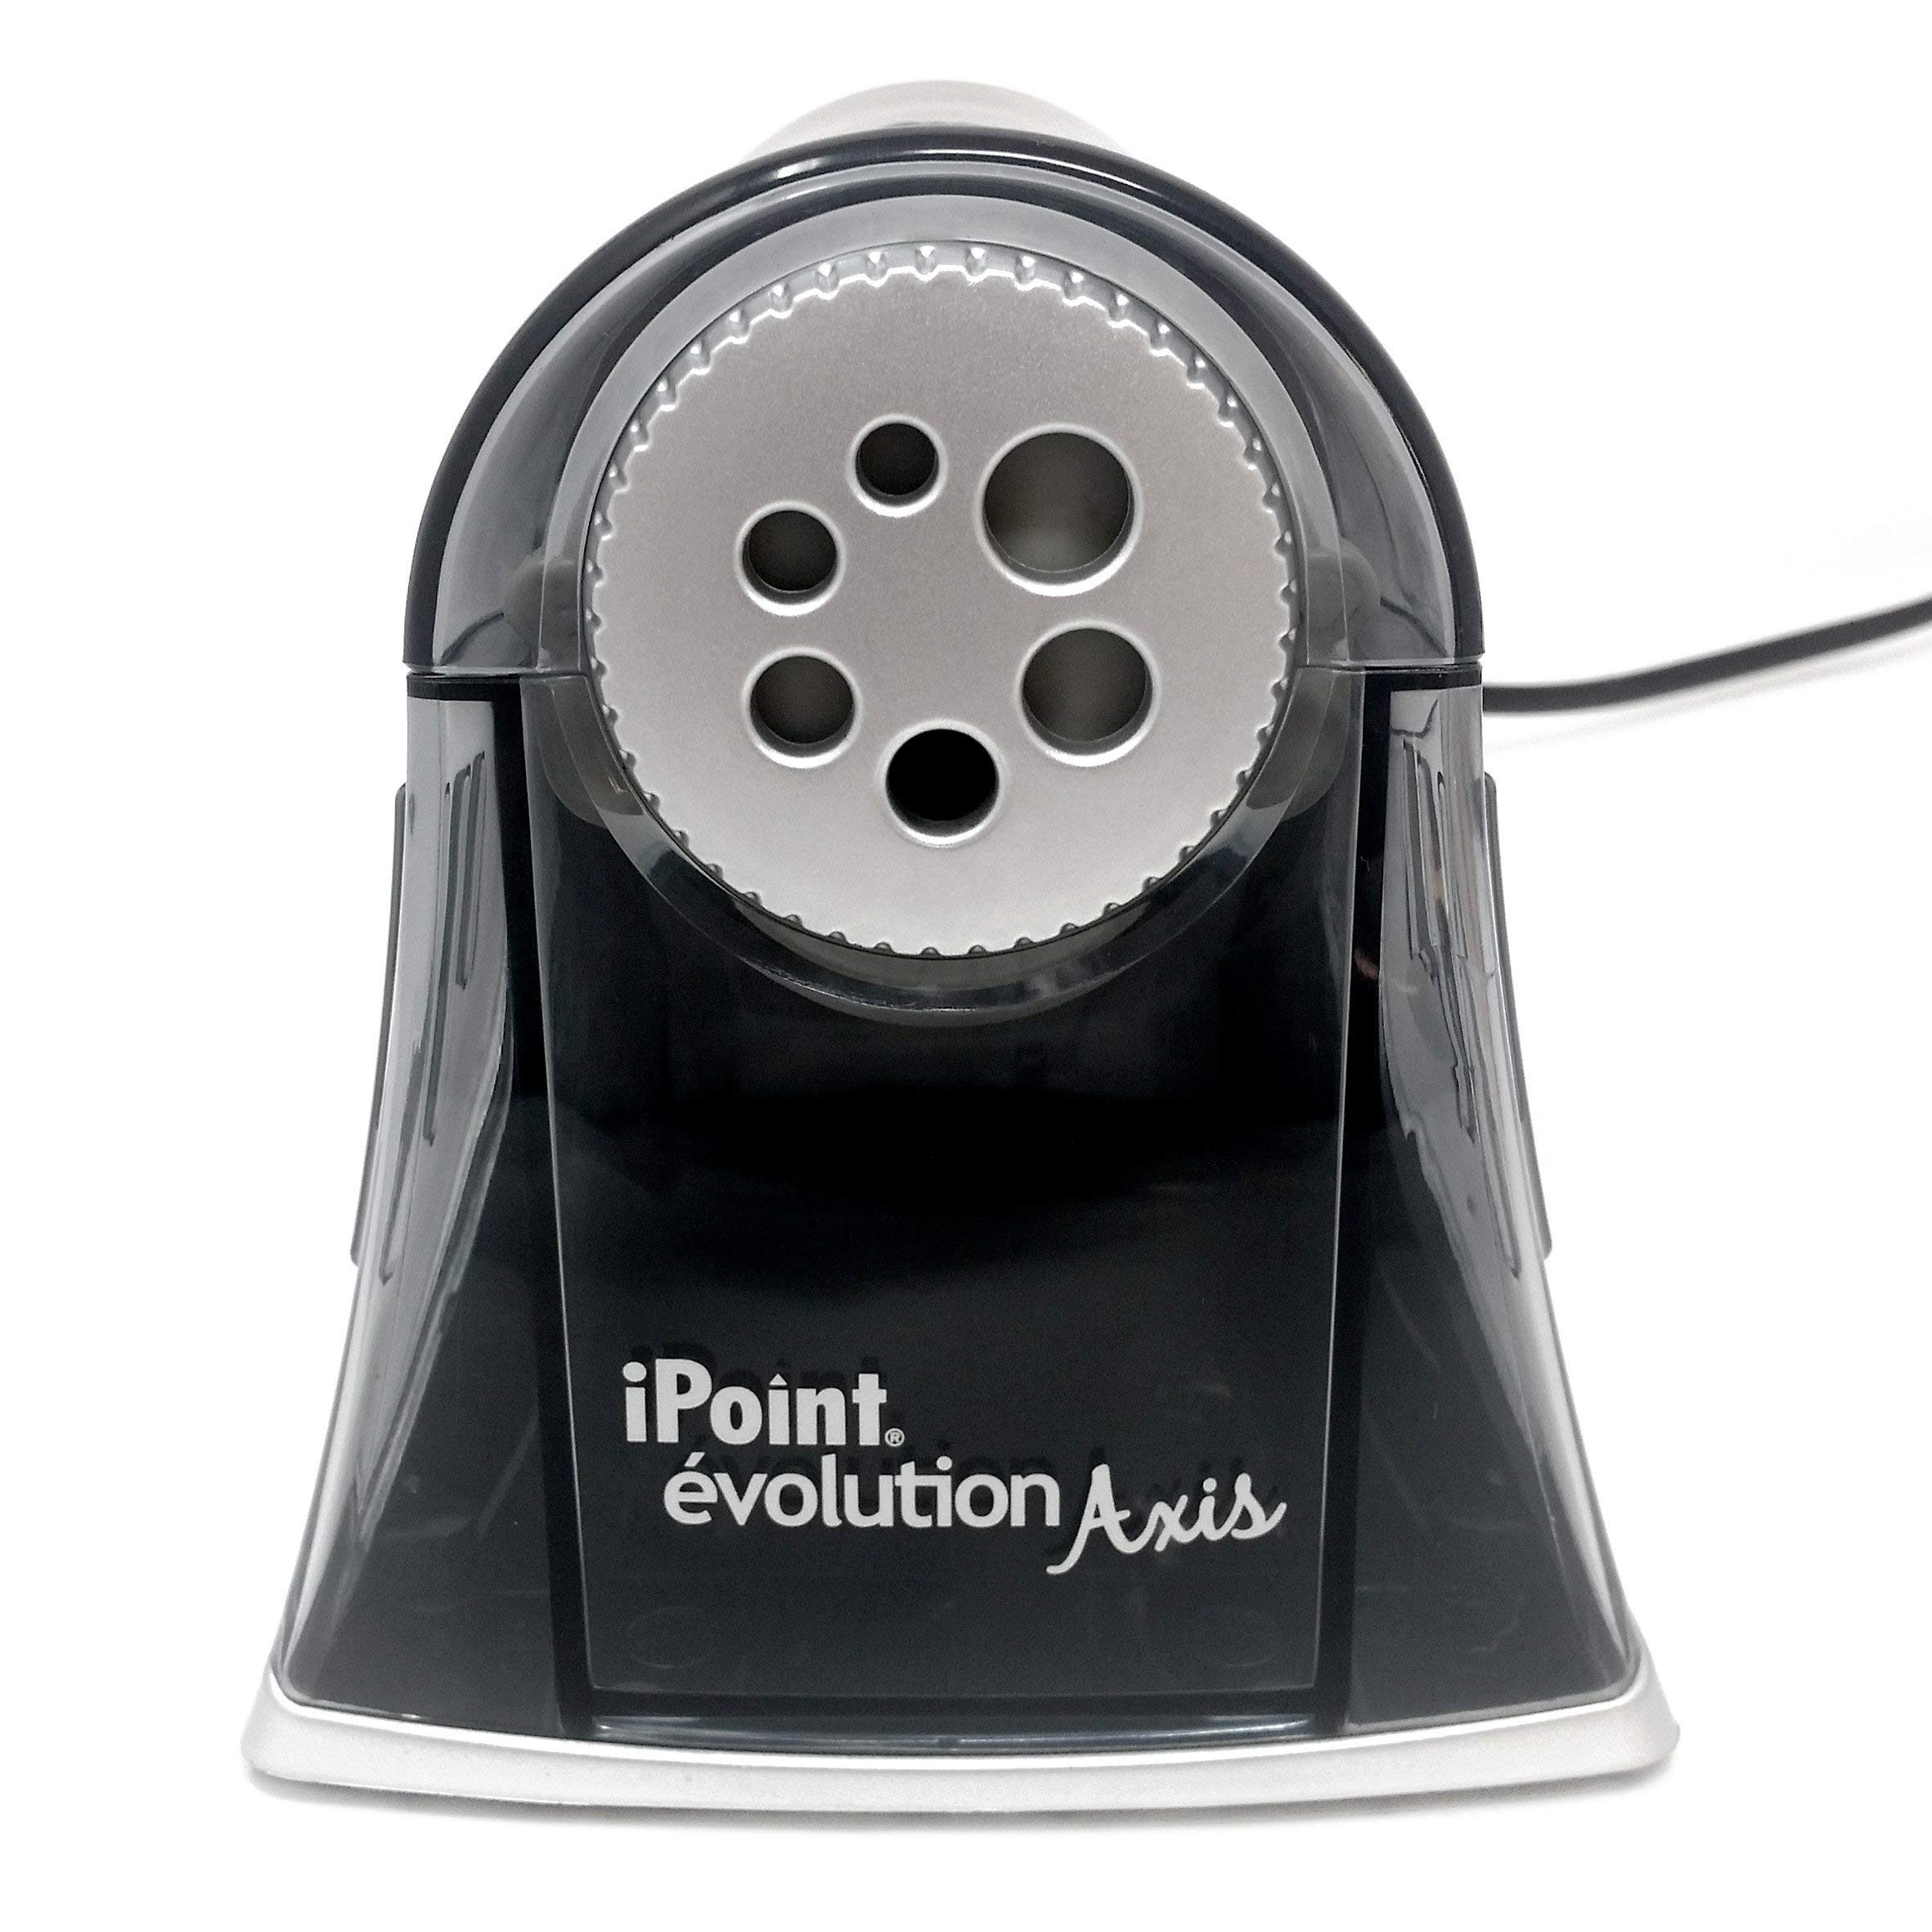 Westcott - iPoint évolution Axis - Auto-Stop Electric Desktop Pencil Sharpener with UK Plug - Carbon Steel Blades by Westcott (Image #3)